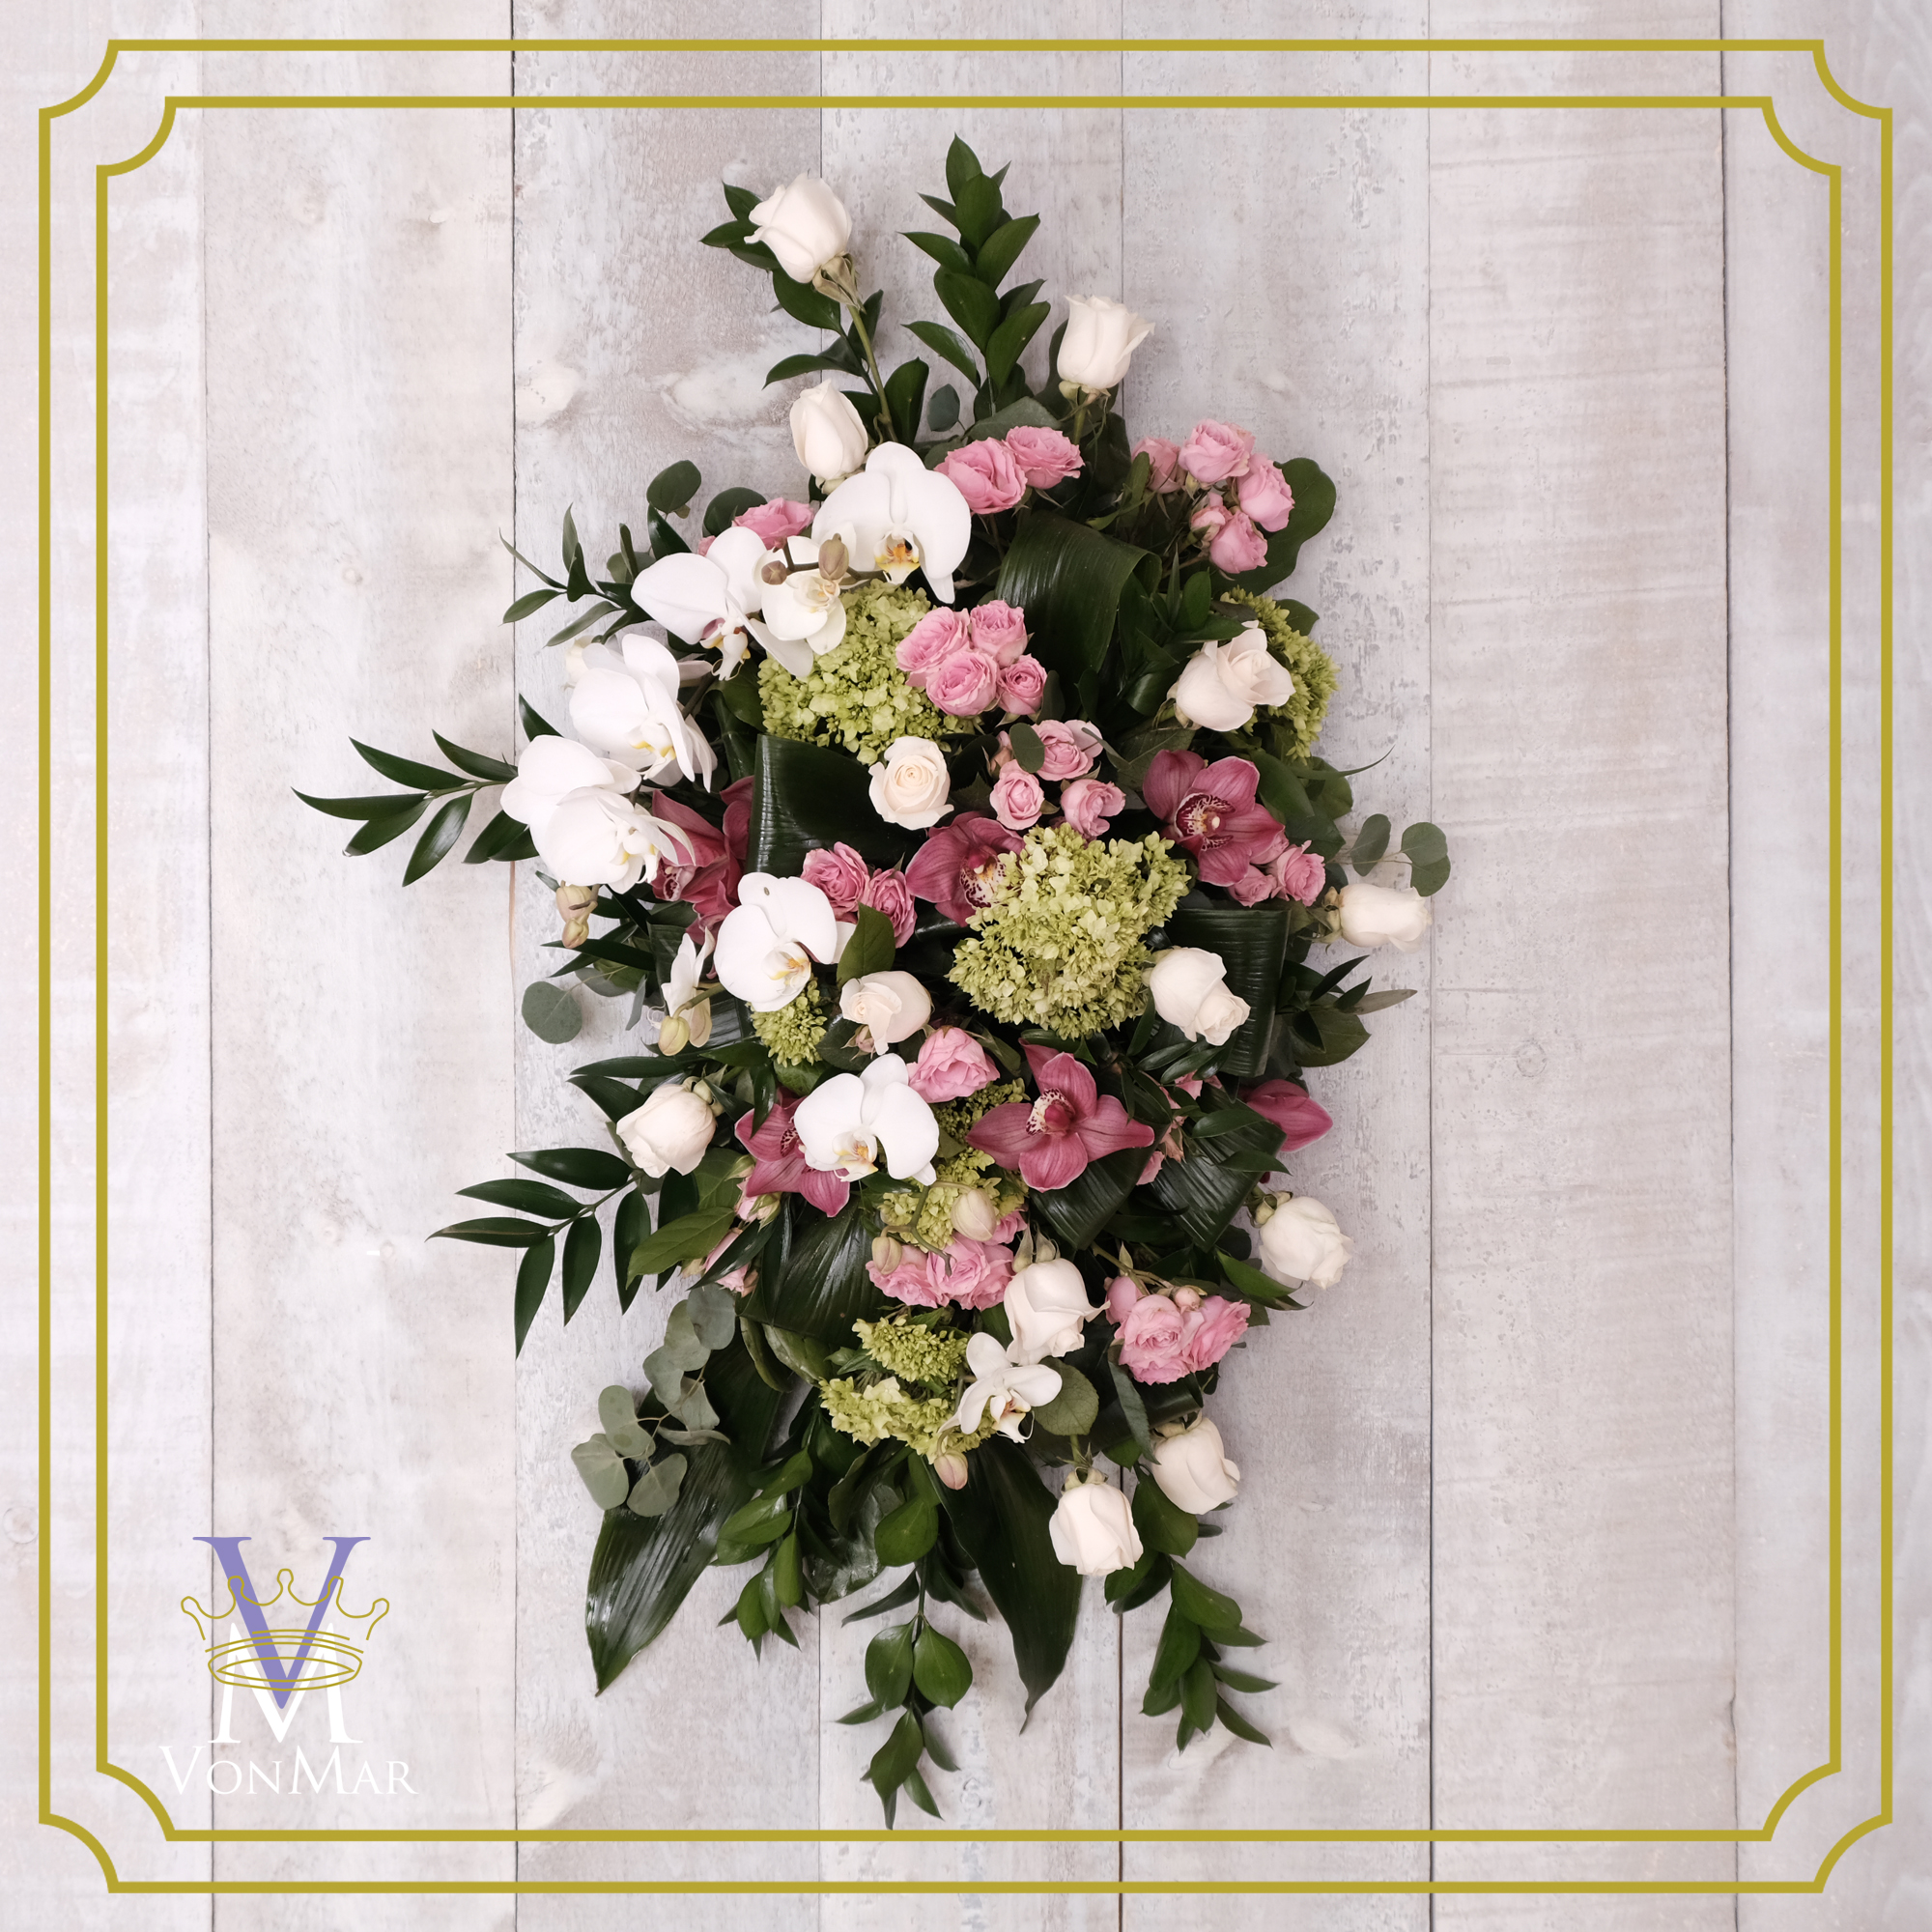 Hanging tribute spray in pink, white and greens